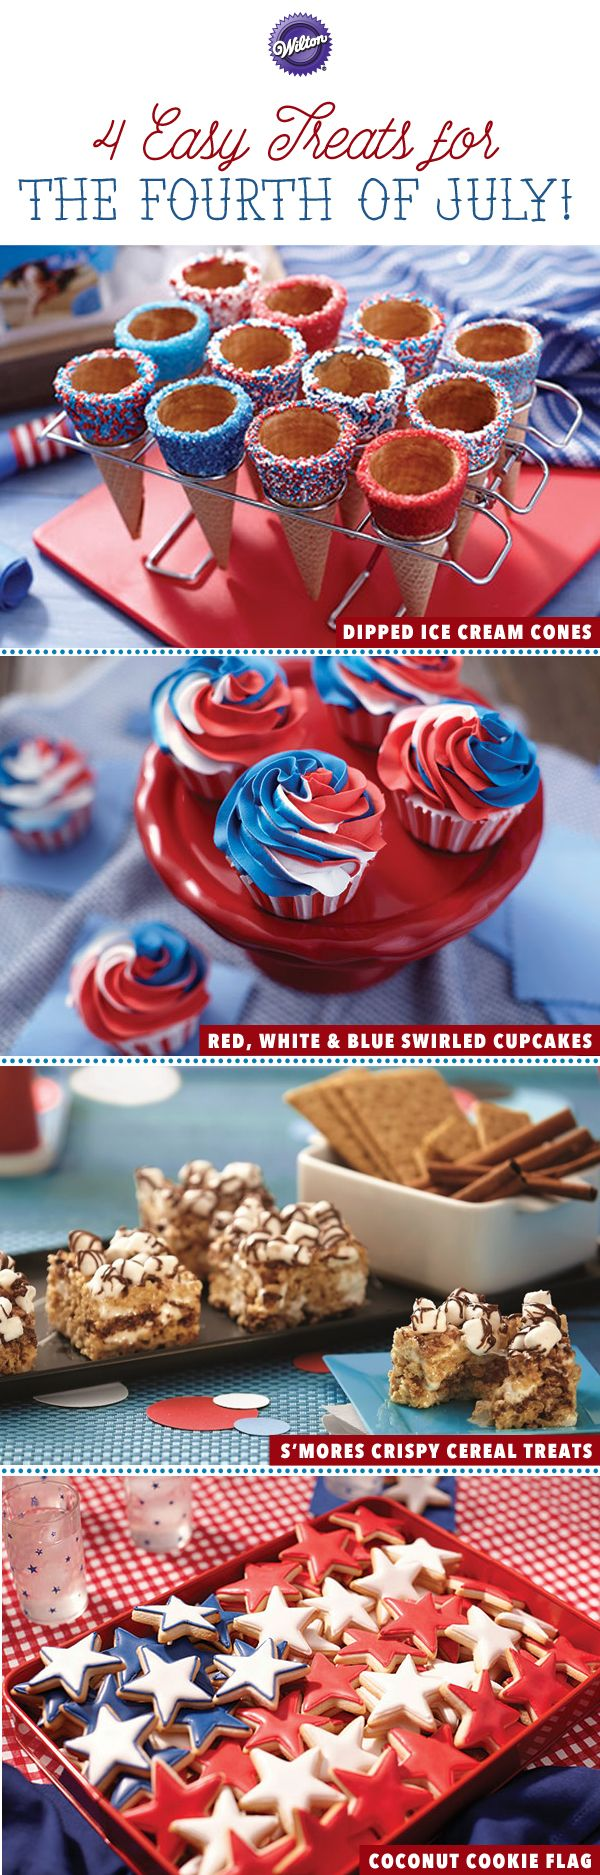 Everyone will be bringing something to the 4th of July picnic, but you can bring the grand finale. Each of these tasty sweet treats captures the flair of the 4th without the fuss. In just a little time, you can add patriotic color and fun flavor to classics like cupcakes, ice cream cones and cookies.